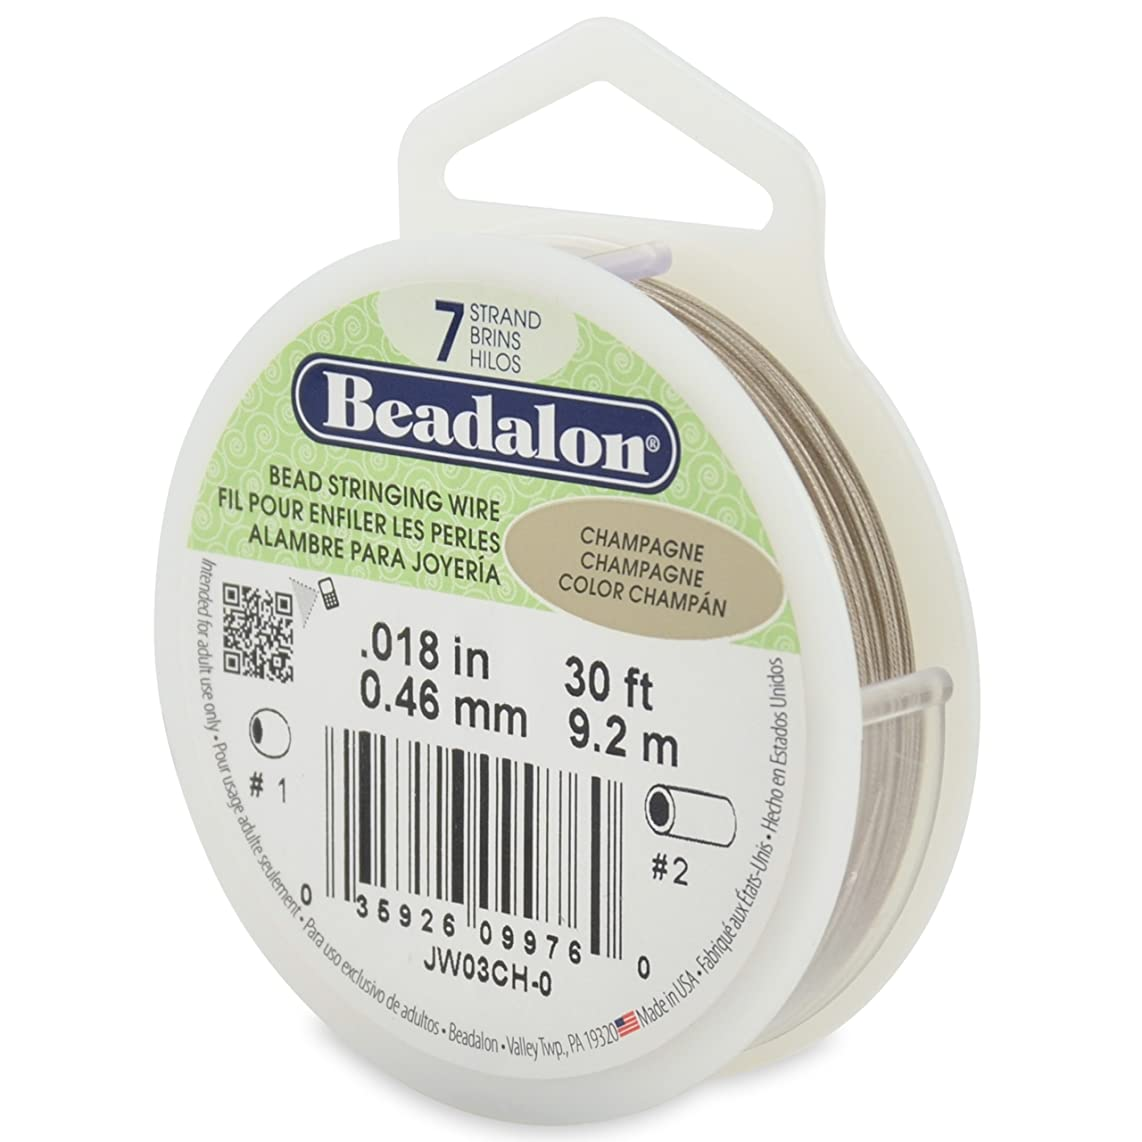 Beadalon 7-Strand Stainless Steel 0.018-Inch Bead Stringing Wire, 30-Feet, Champagne